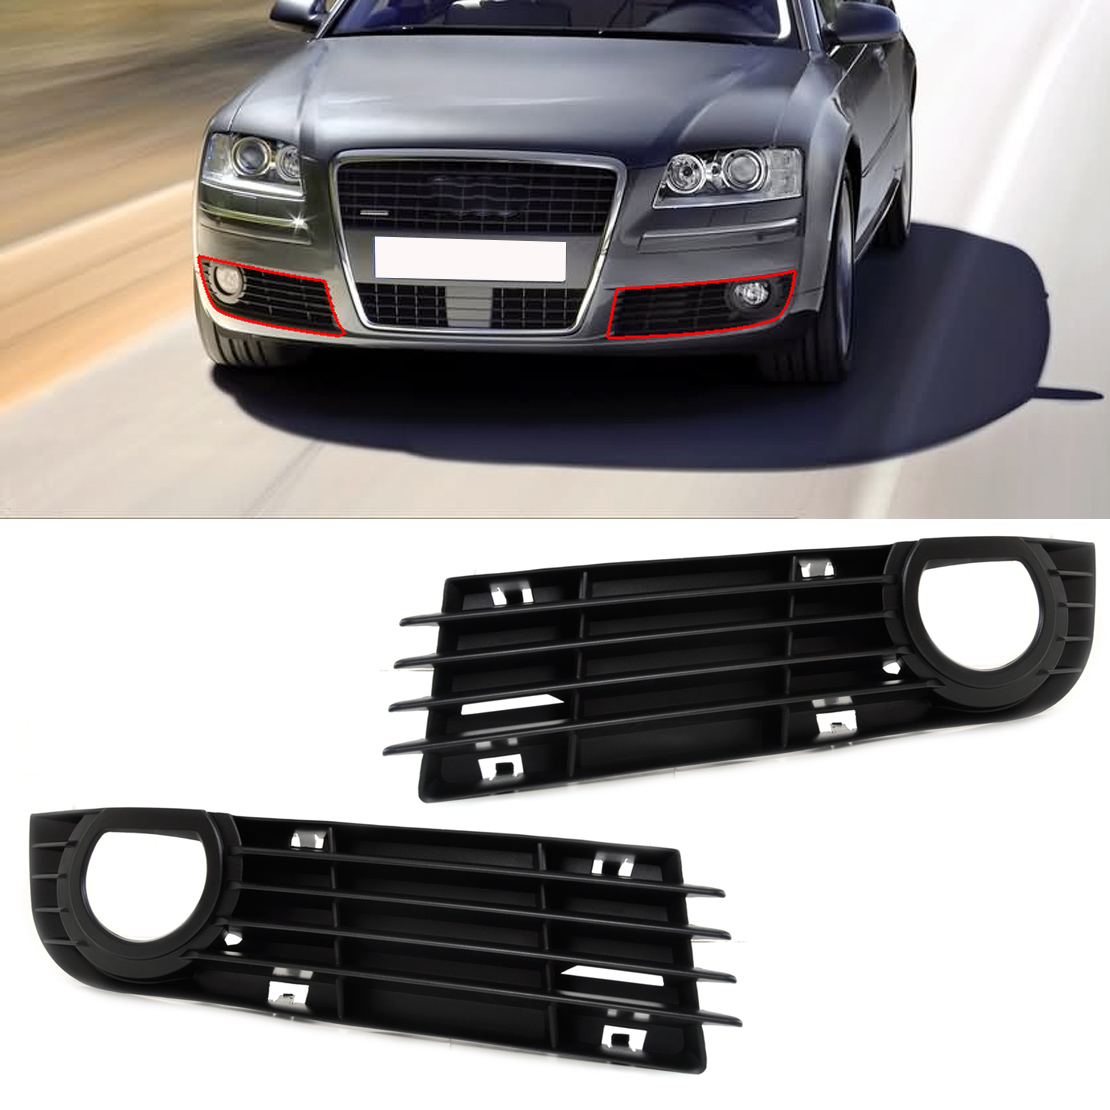 DWCX 4E0807681AD01C 4E0807682AD01C 1 Pair Front Insert Bumper Fog Light Grille Protective Mesh for Audi A8 S8 2006 2007 2008 one pair protective front left right bumper fog light lamp grille covers for a udi a8 s8 q uattro d3 2006 2007 2008